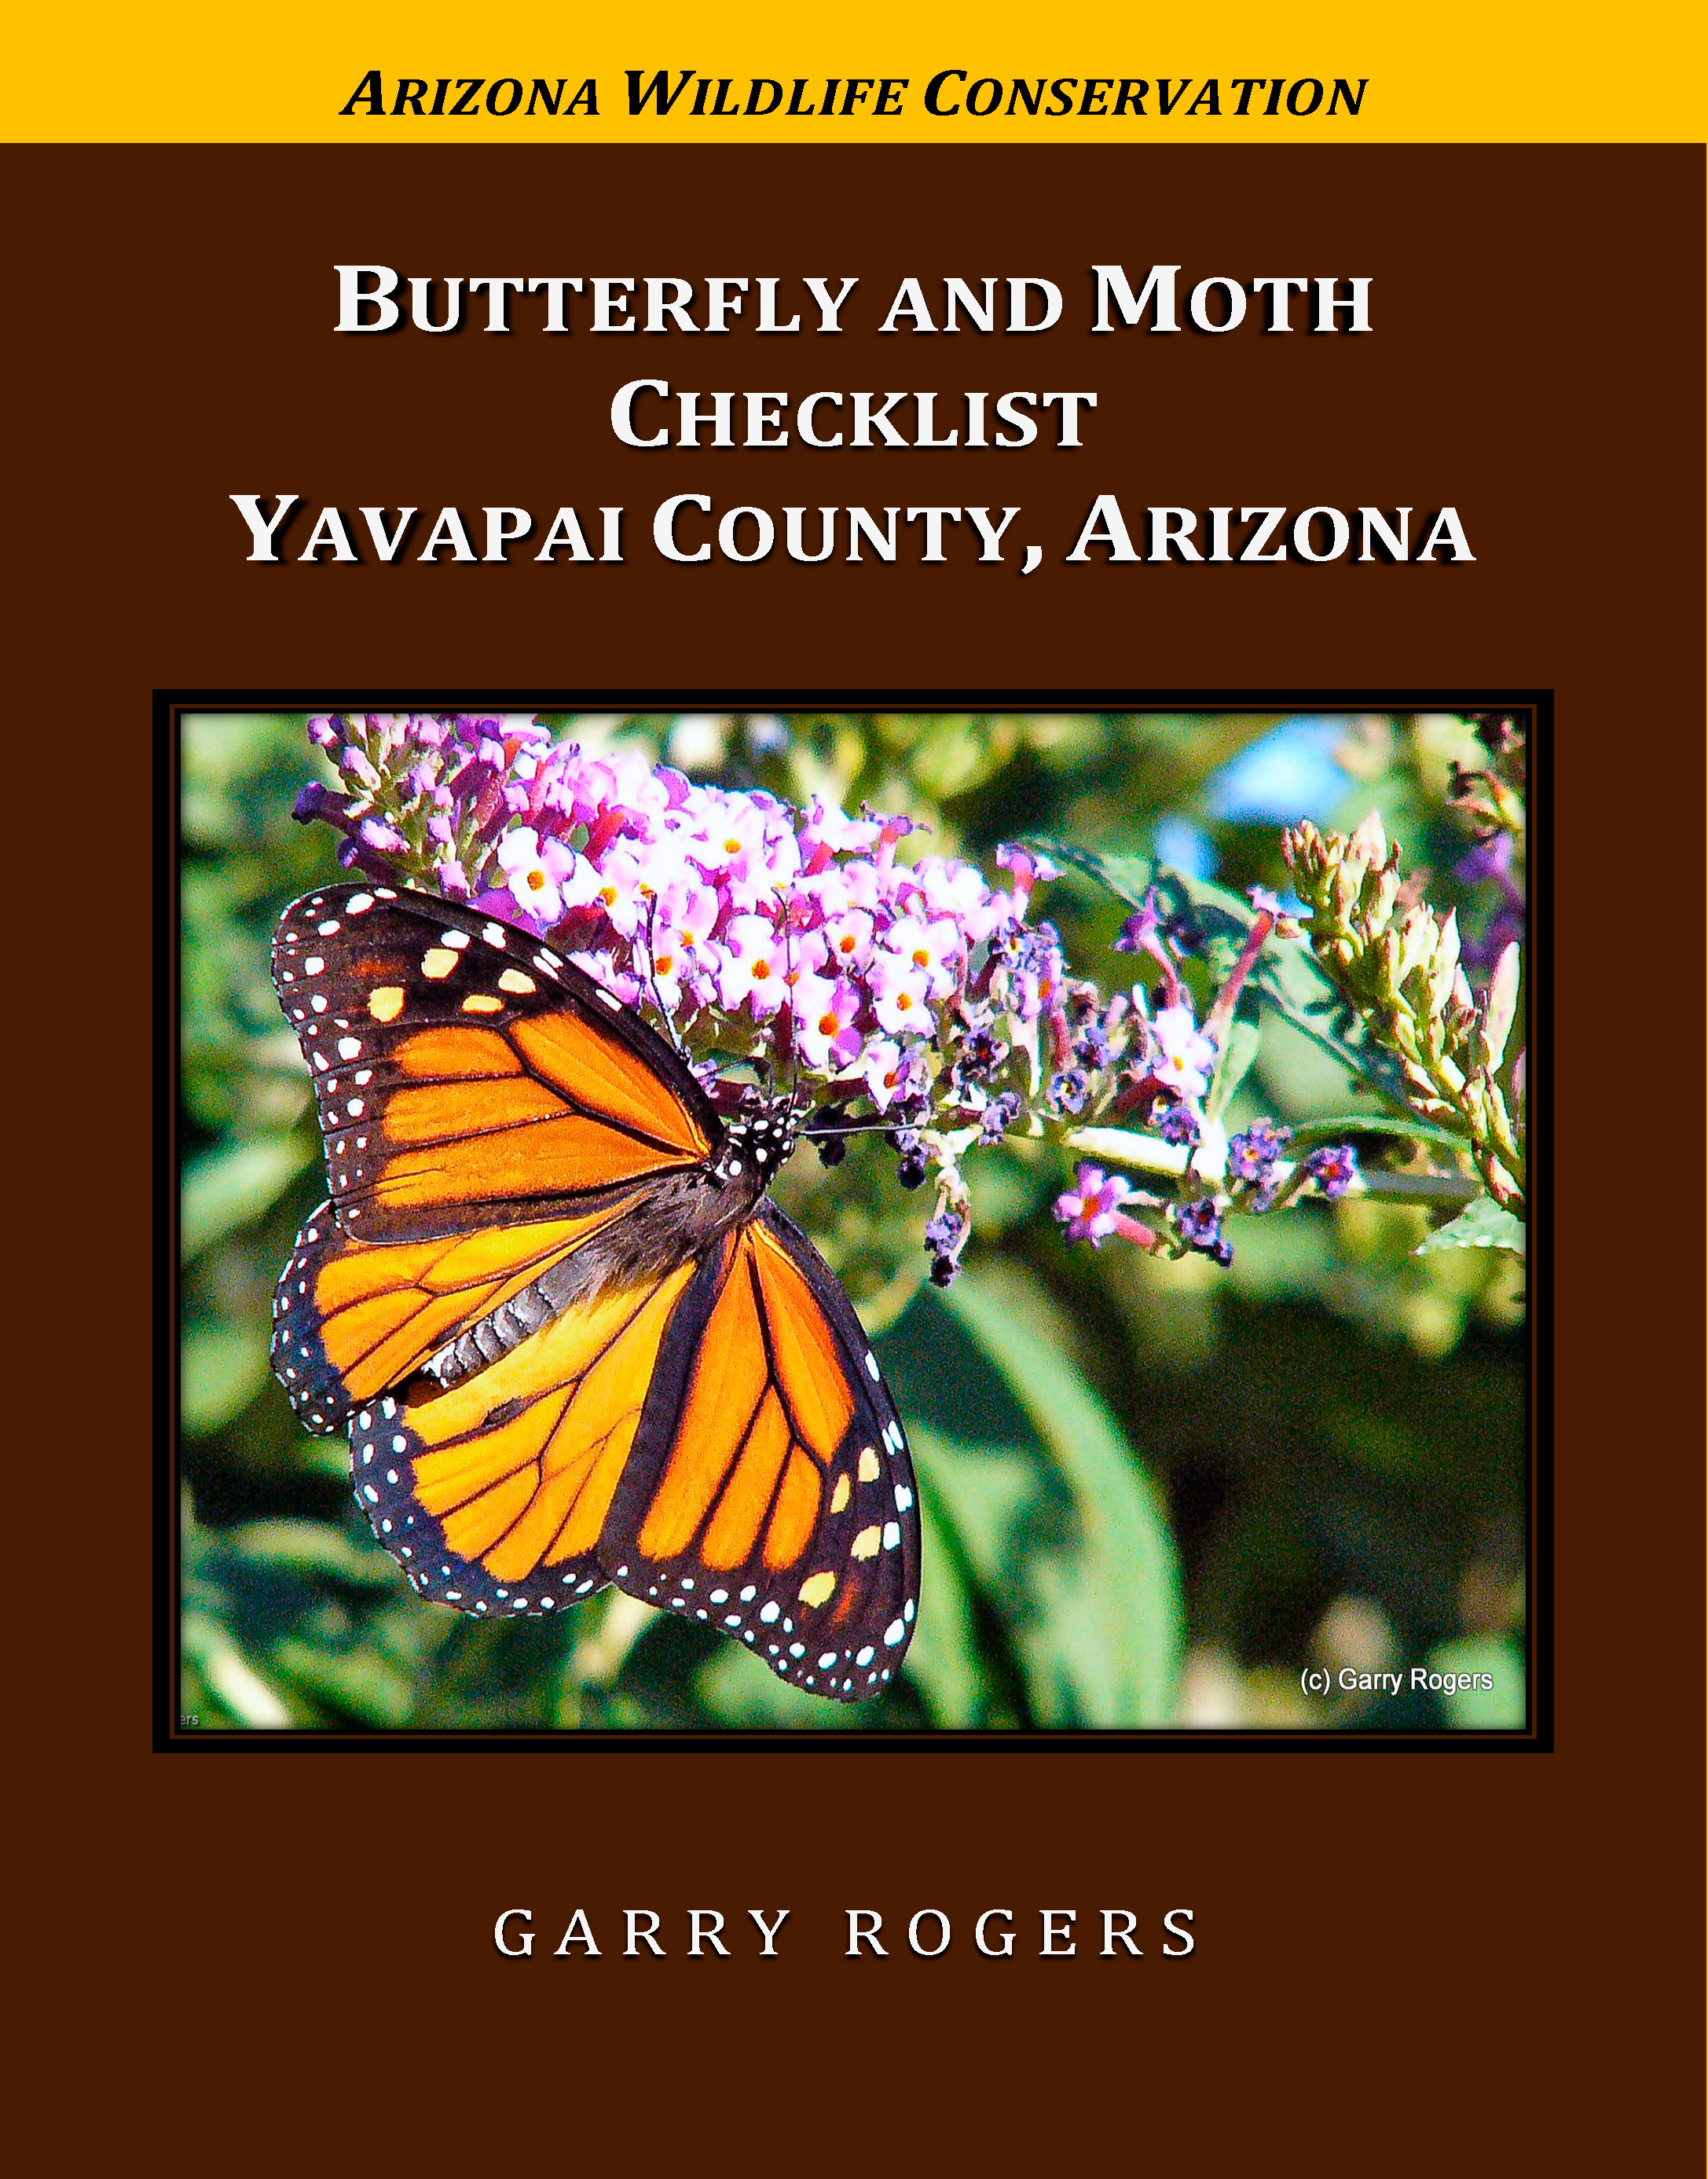 Arizona yavapai county dewey - My Butterfly And Moth Checklist Yavapai County Arizona Is Complete The Book Includes Species Lists From The Butterflies And Moths Of North America